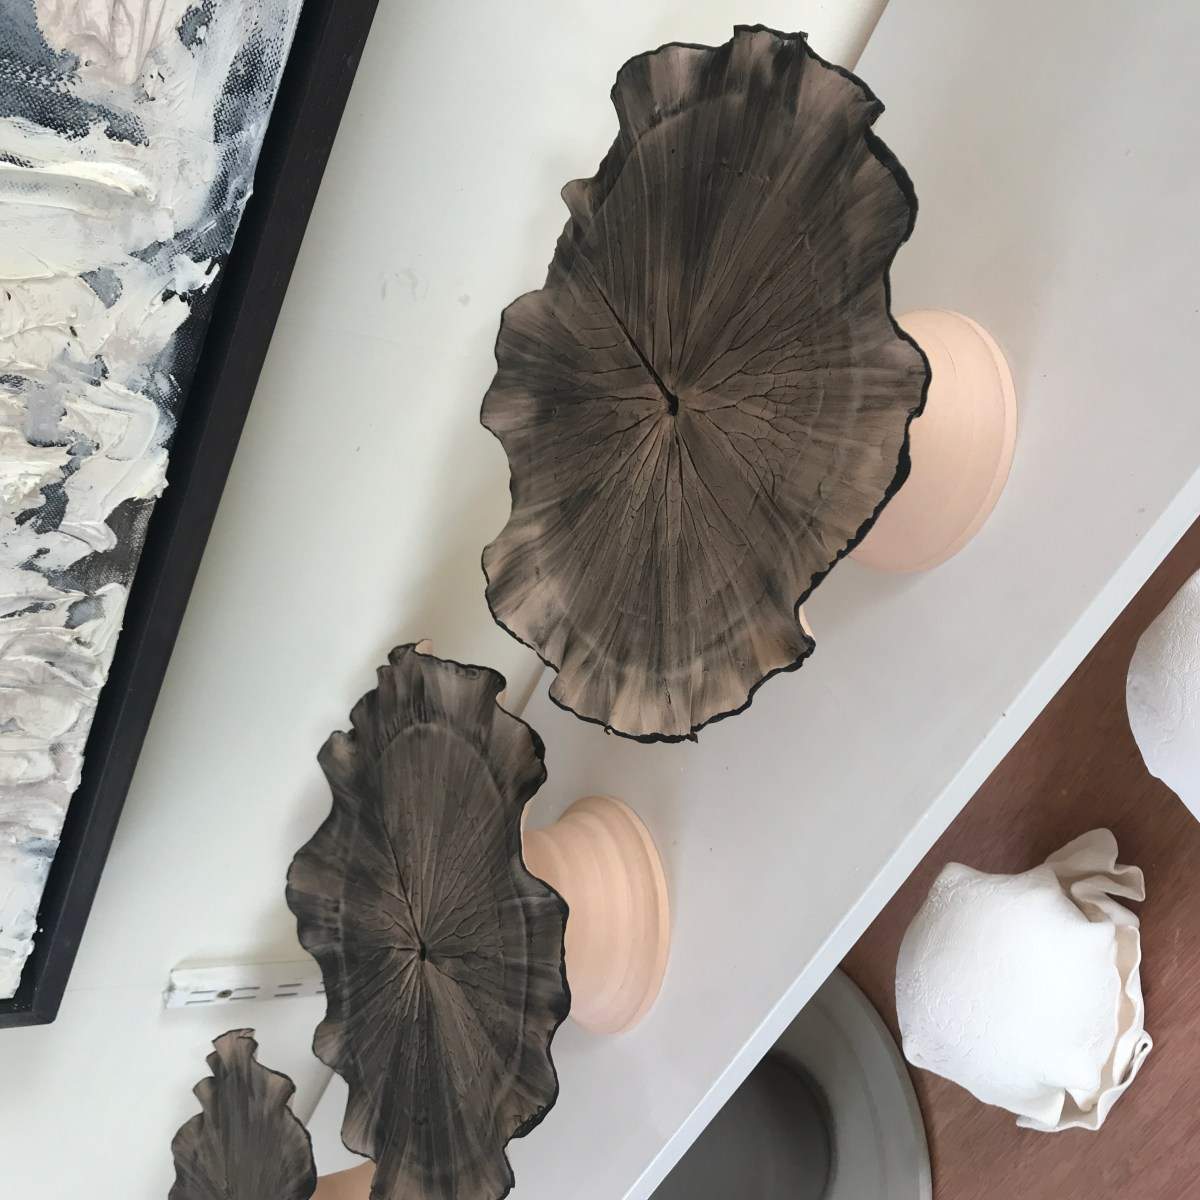 Glazing Process for Pond Lily Leaf Cake Stands by Sonya Ceramic Art